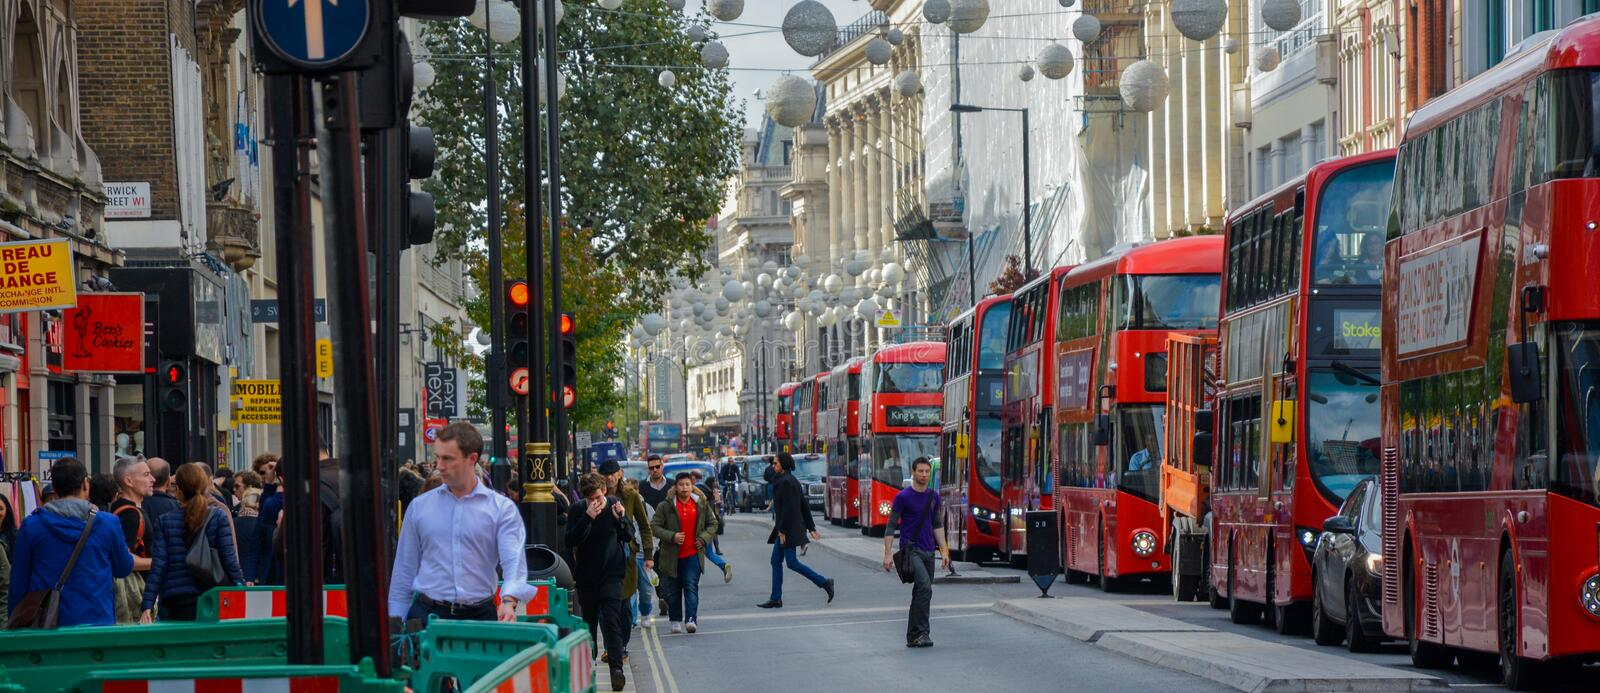 A queue of London Red buses royalty free stock photography